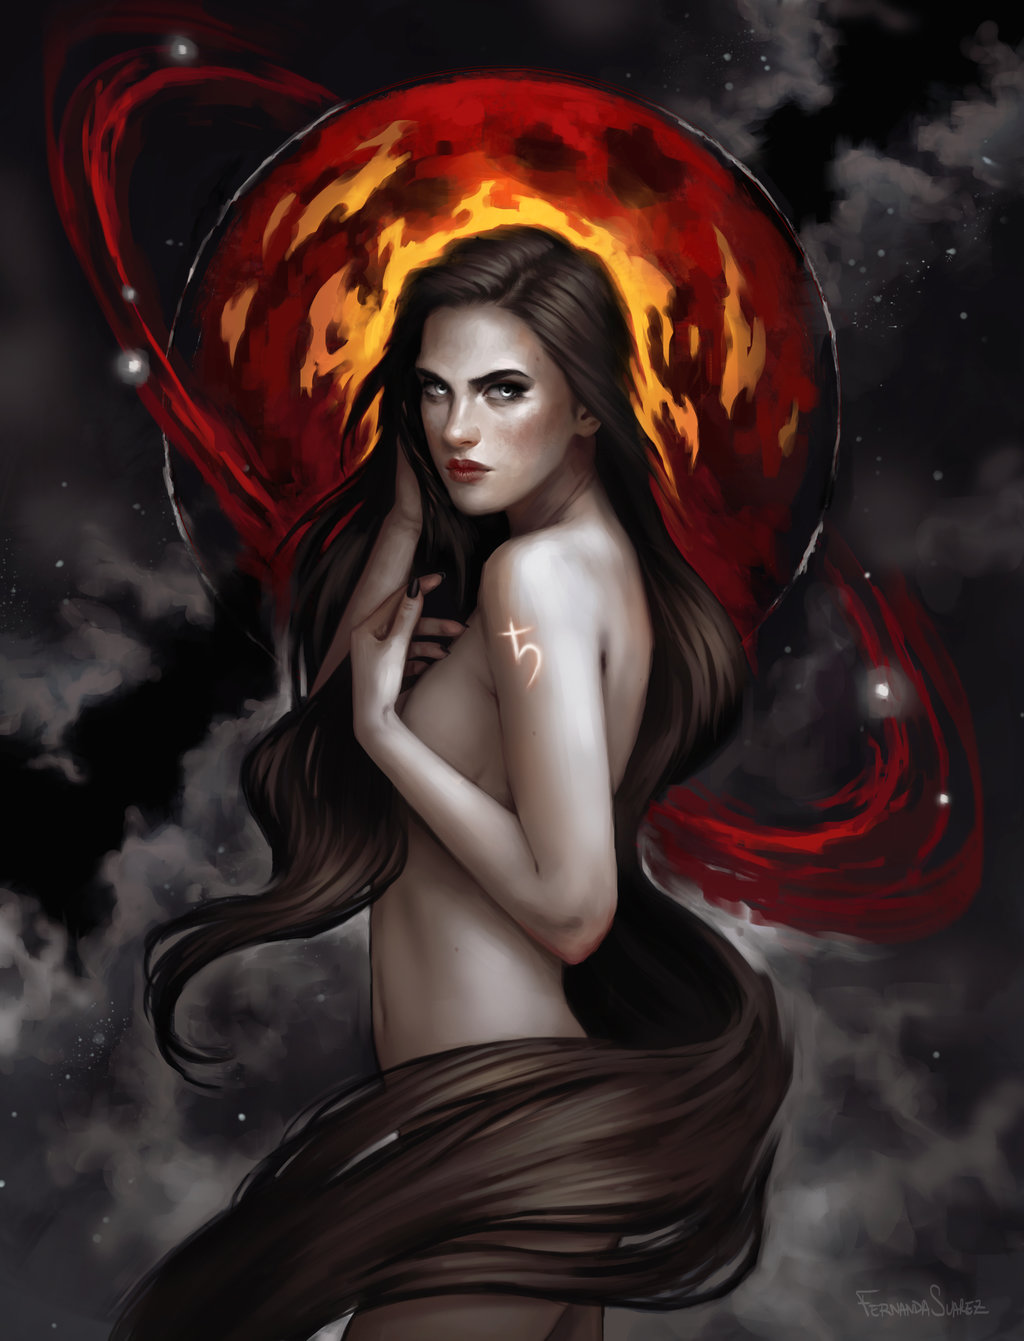 Fernanda_Suarez_digital_painting_illustration_fantasy_mythology